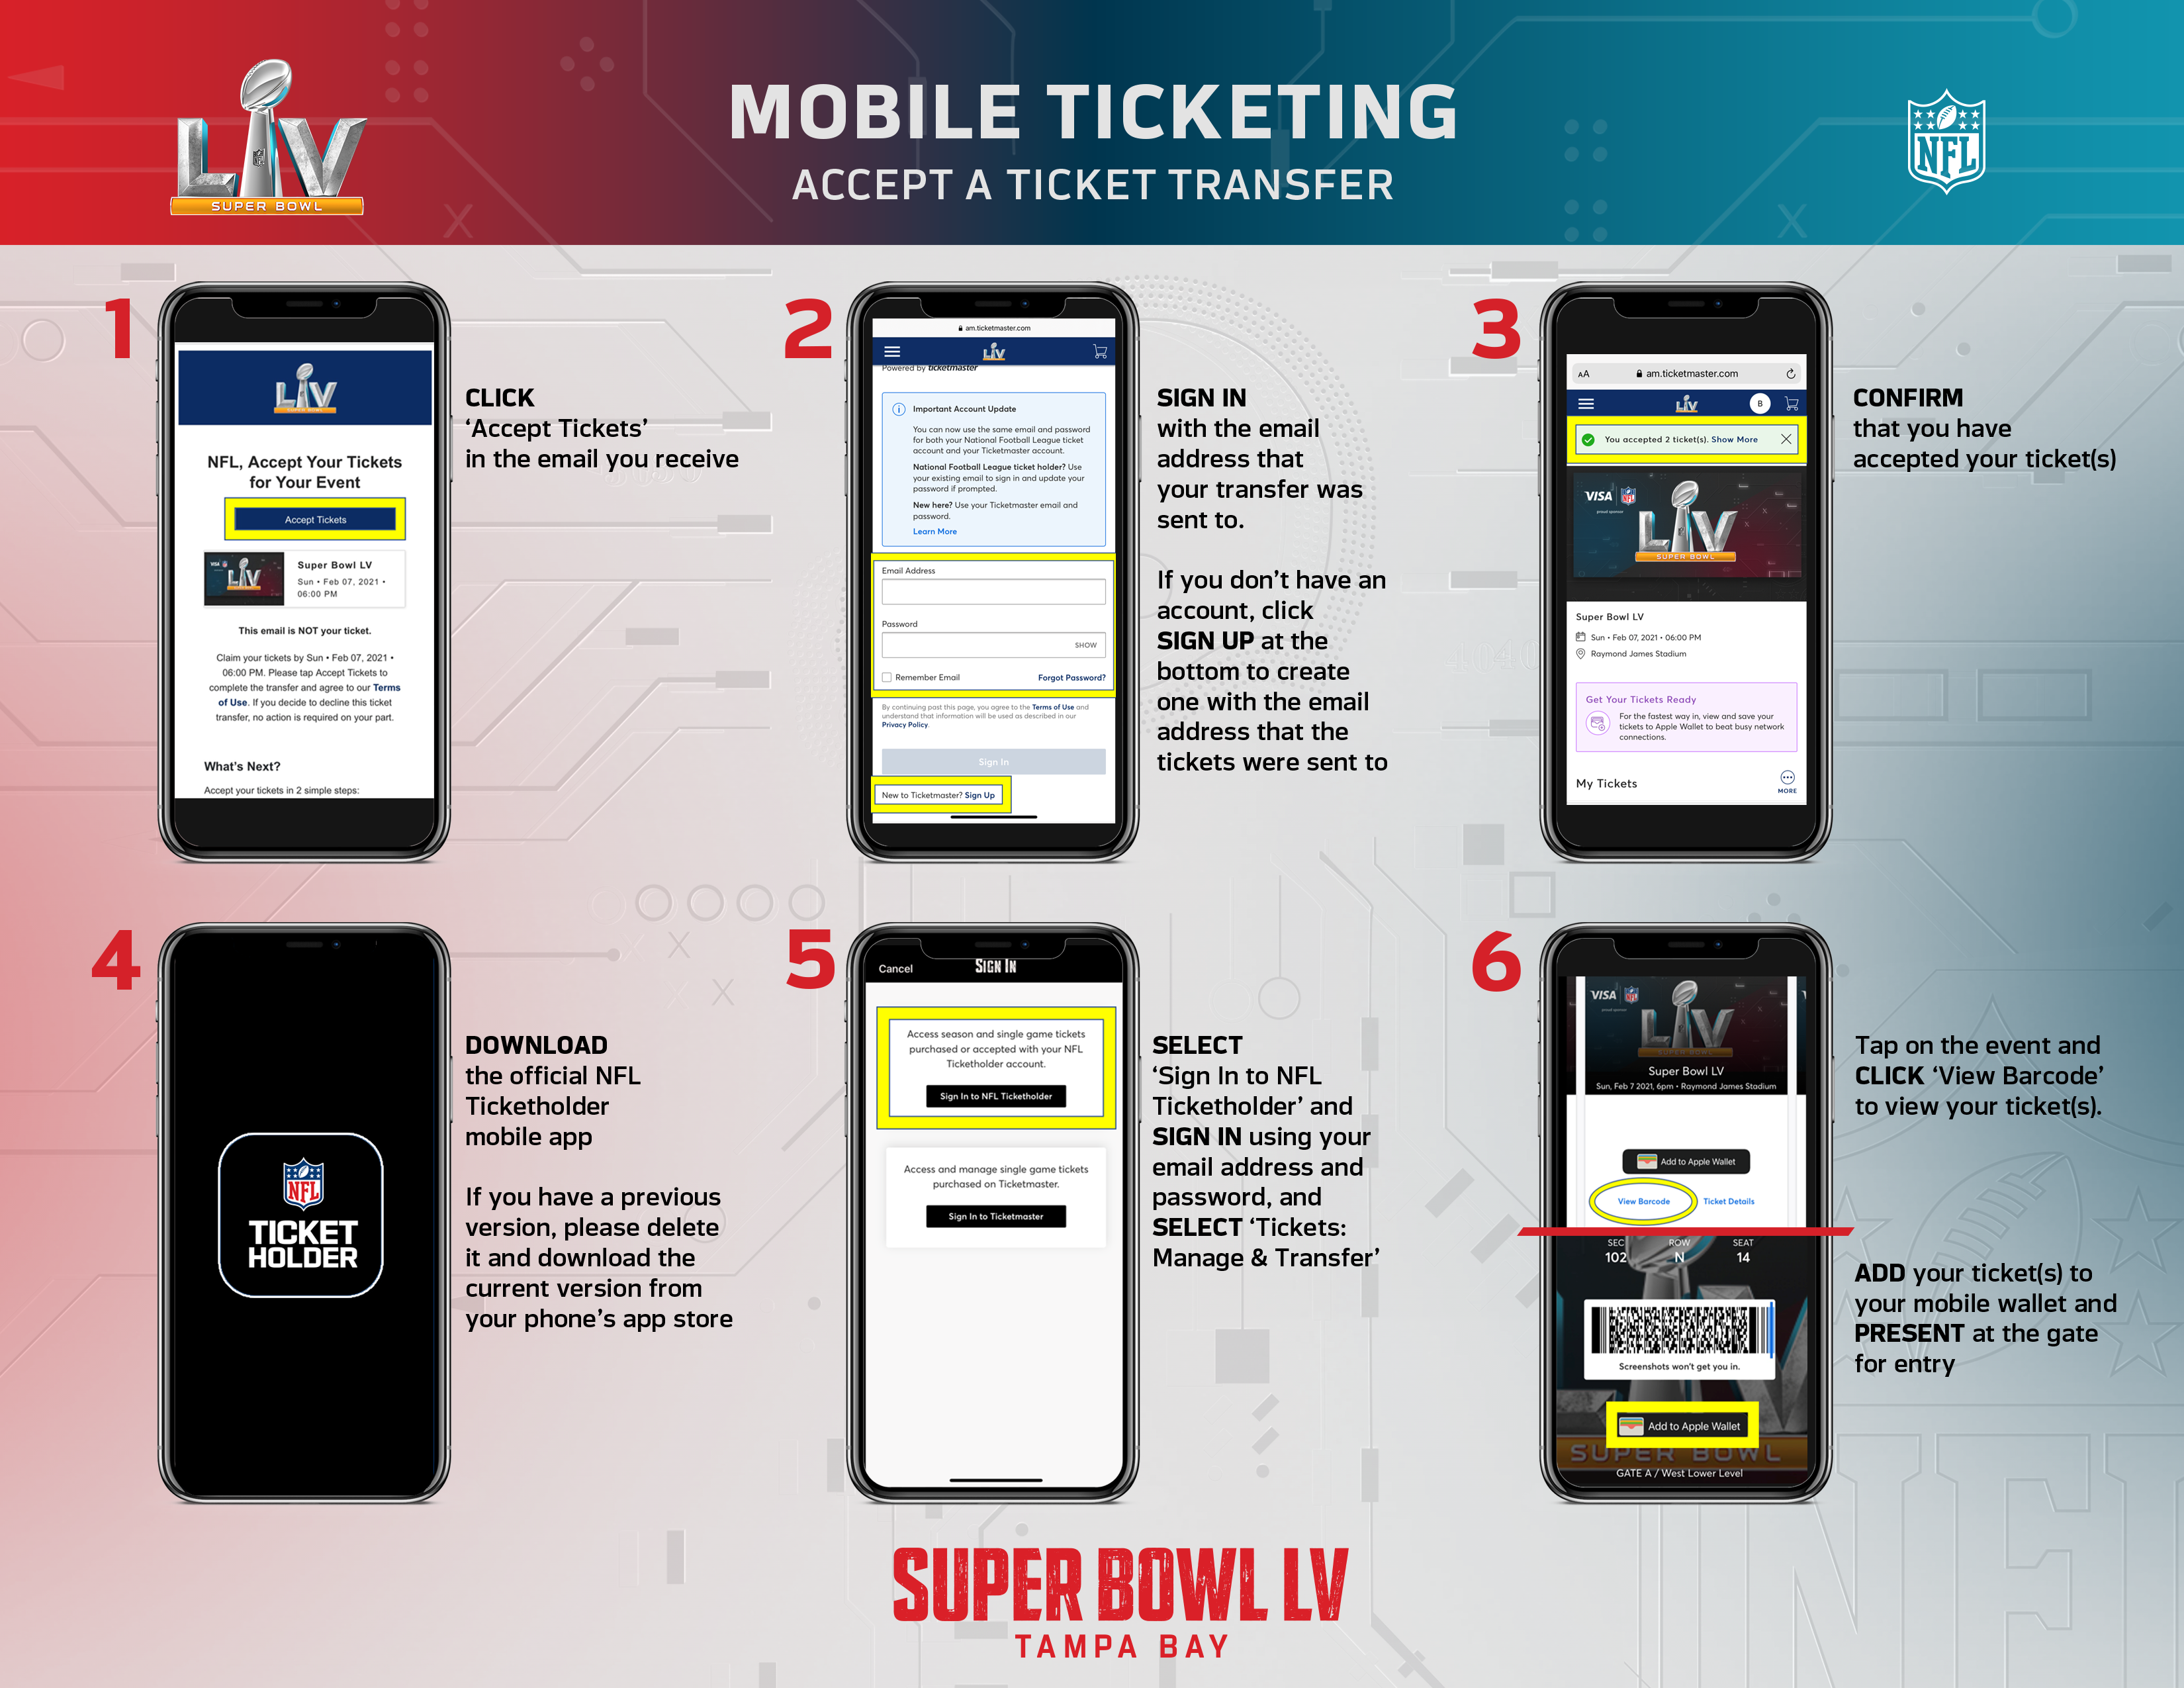 How To Accept Your Tickets